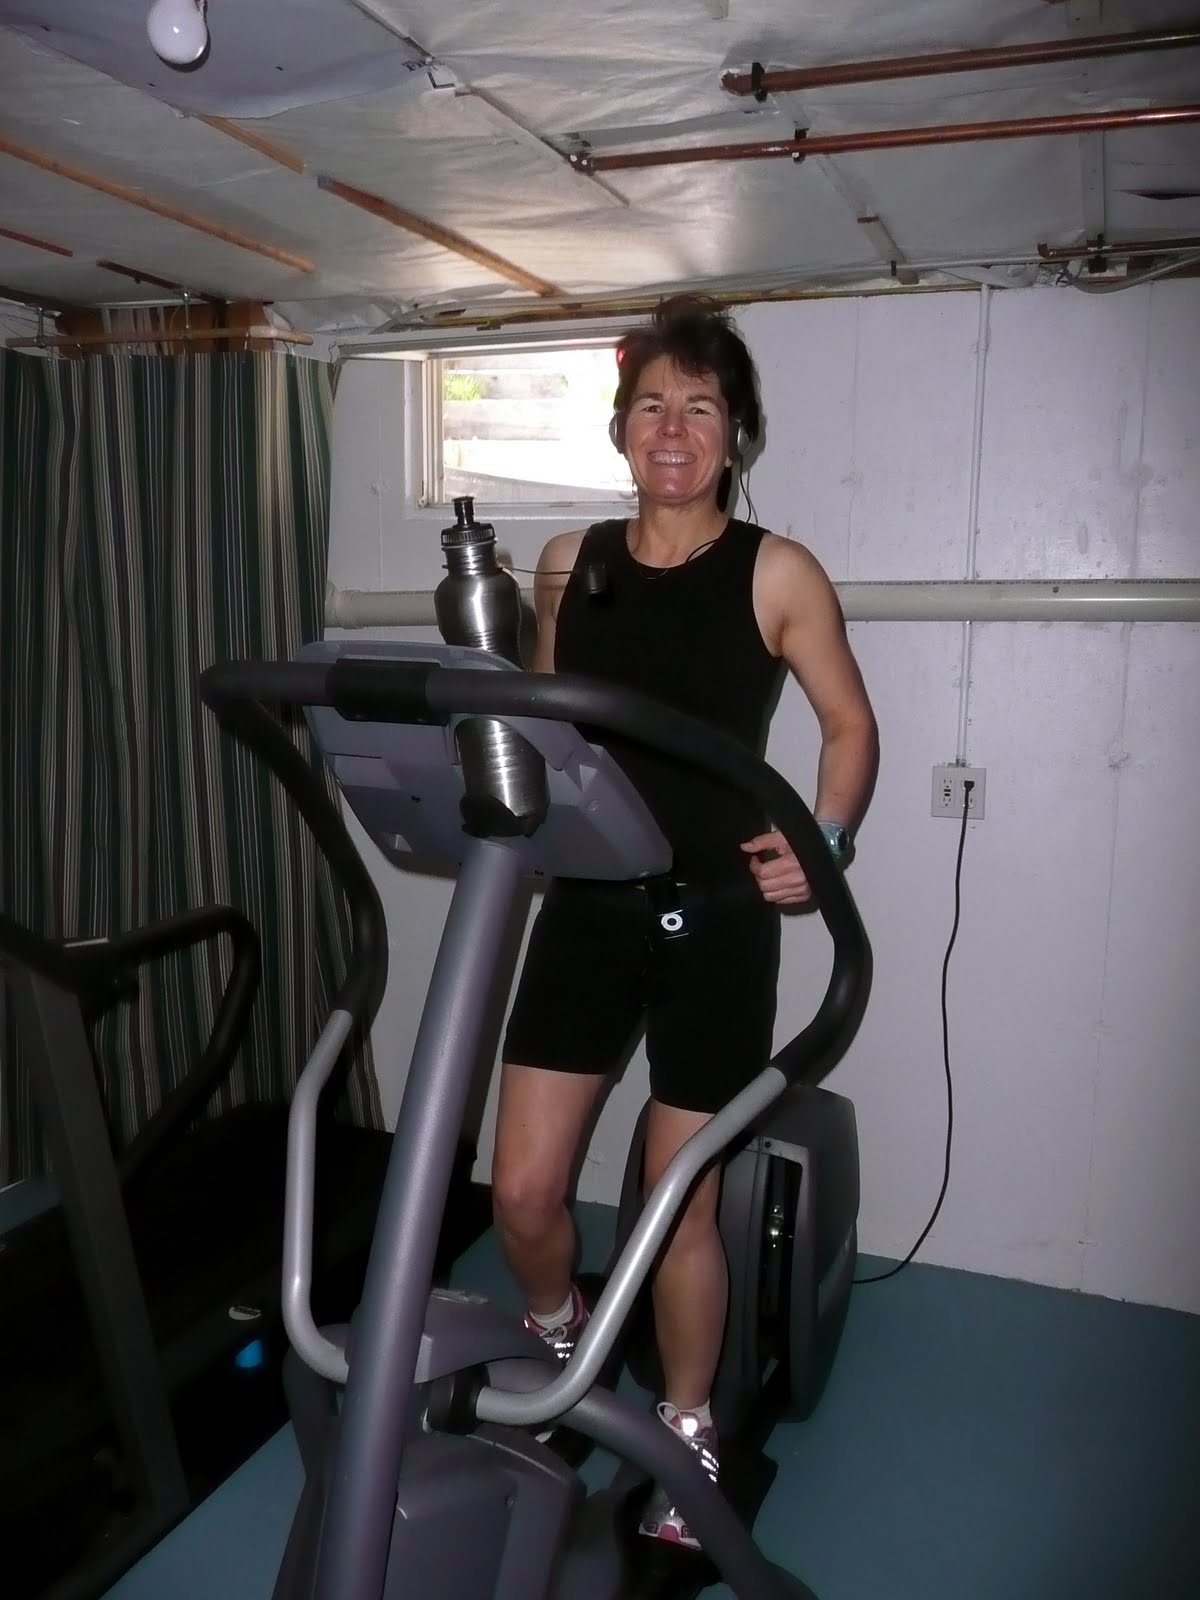 Cranky Fitness 23andme Genetic Testing What S The Deal: Cranky Fitness: Happiness Is A Home Gym